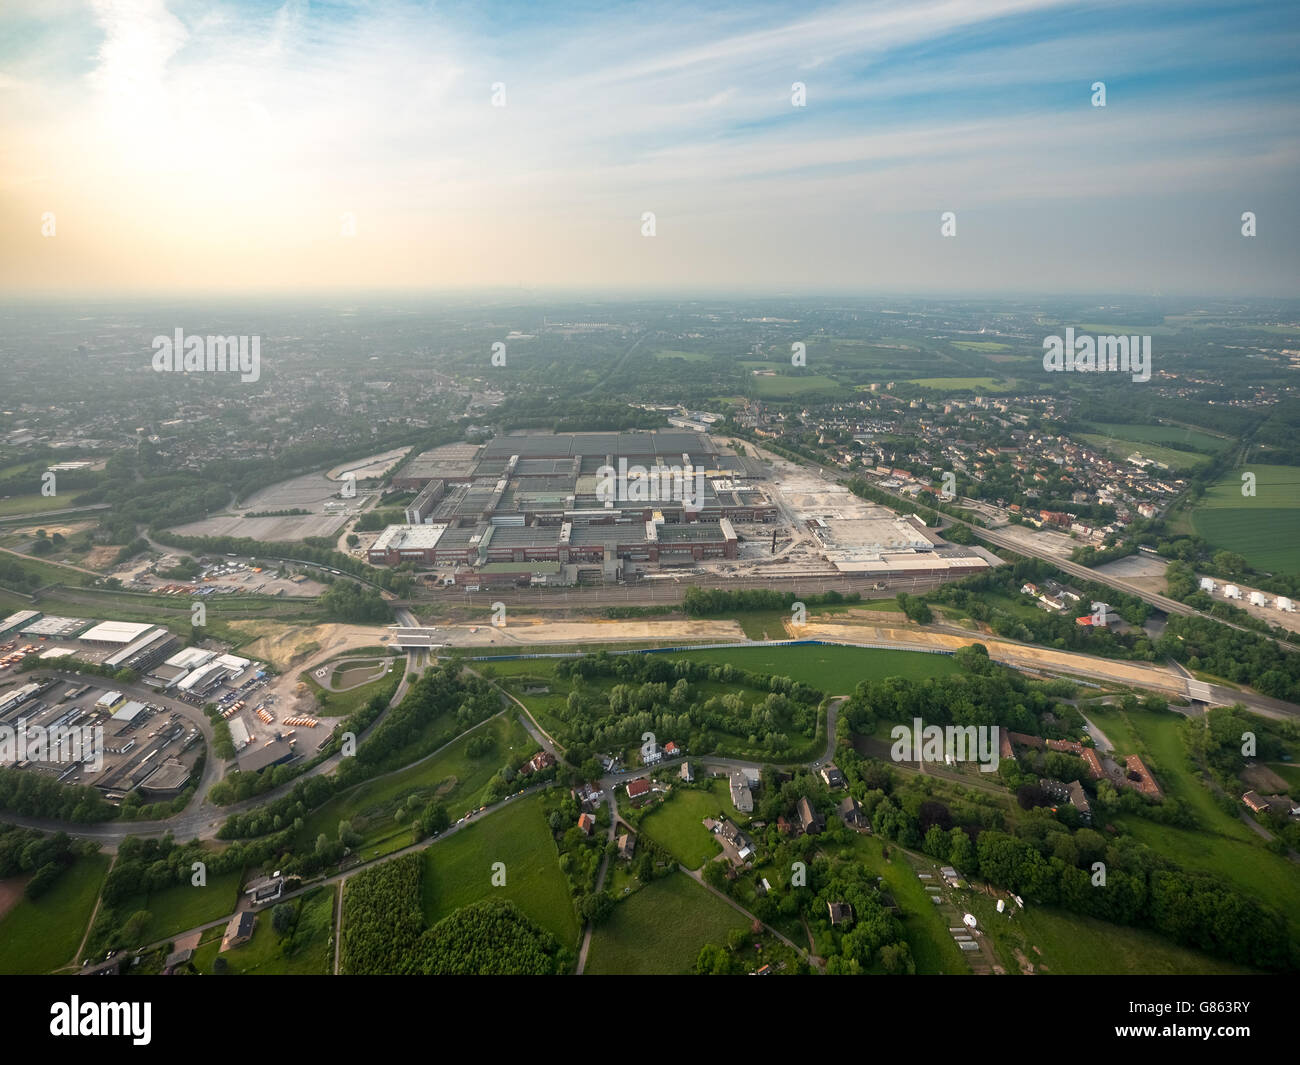 Aerial view, demolition OPEL plant 1, Automotive, Bochum, Ruhr area, North Rhine-Westphalia, Germany, Europe, Aerial - Stock Image